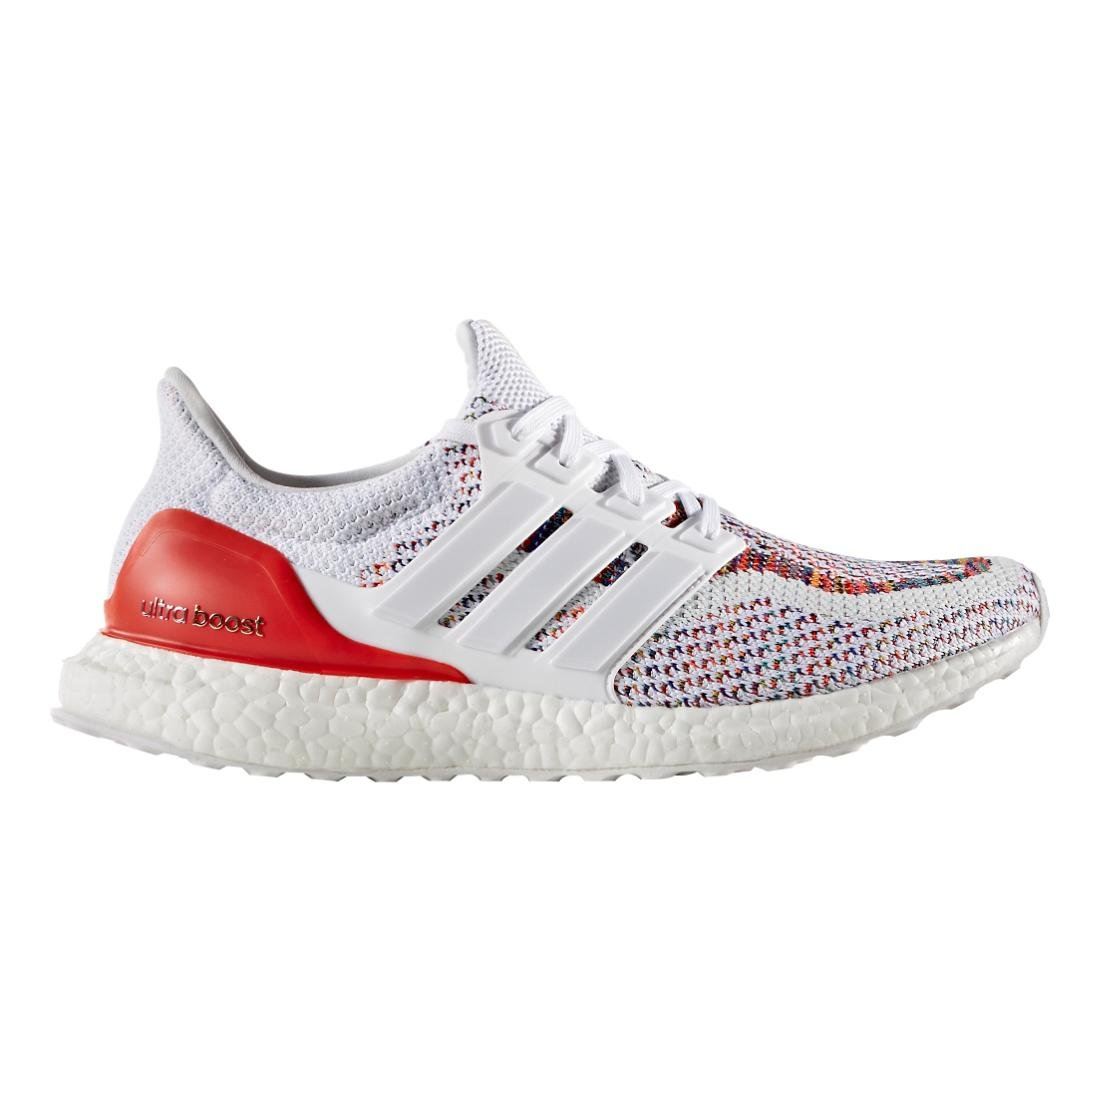 Man/Woman adidas Men's Ultra Boost Trainers Multicolor Valuable Size: New Listing luxurious Valuable Multicolor boutique HH15160 61cf9e